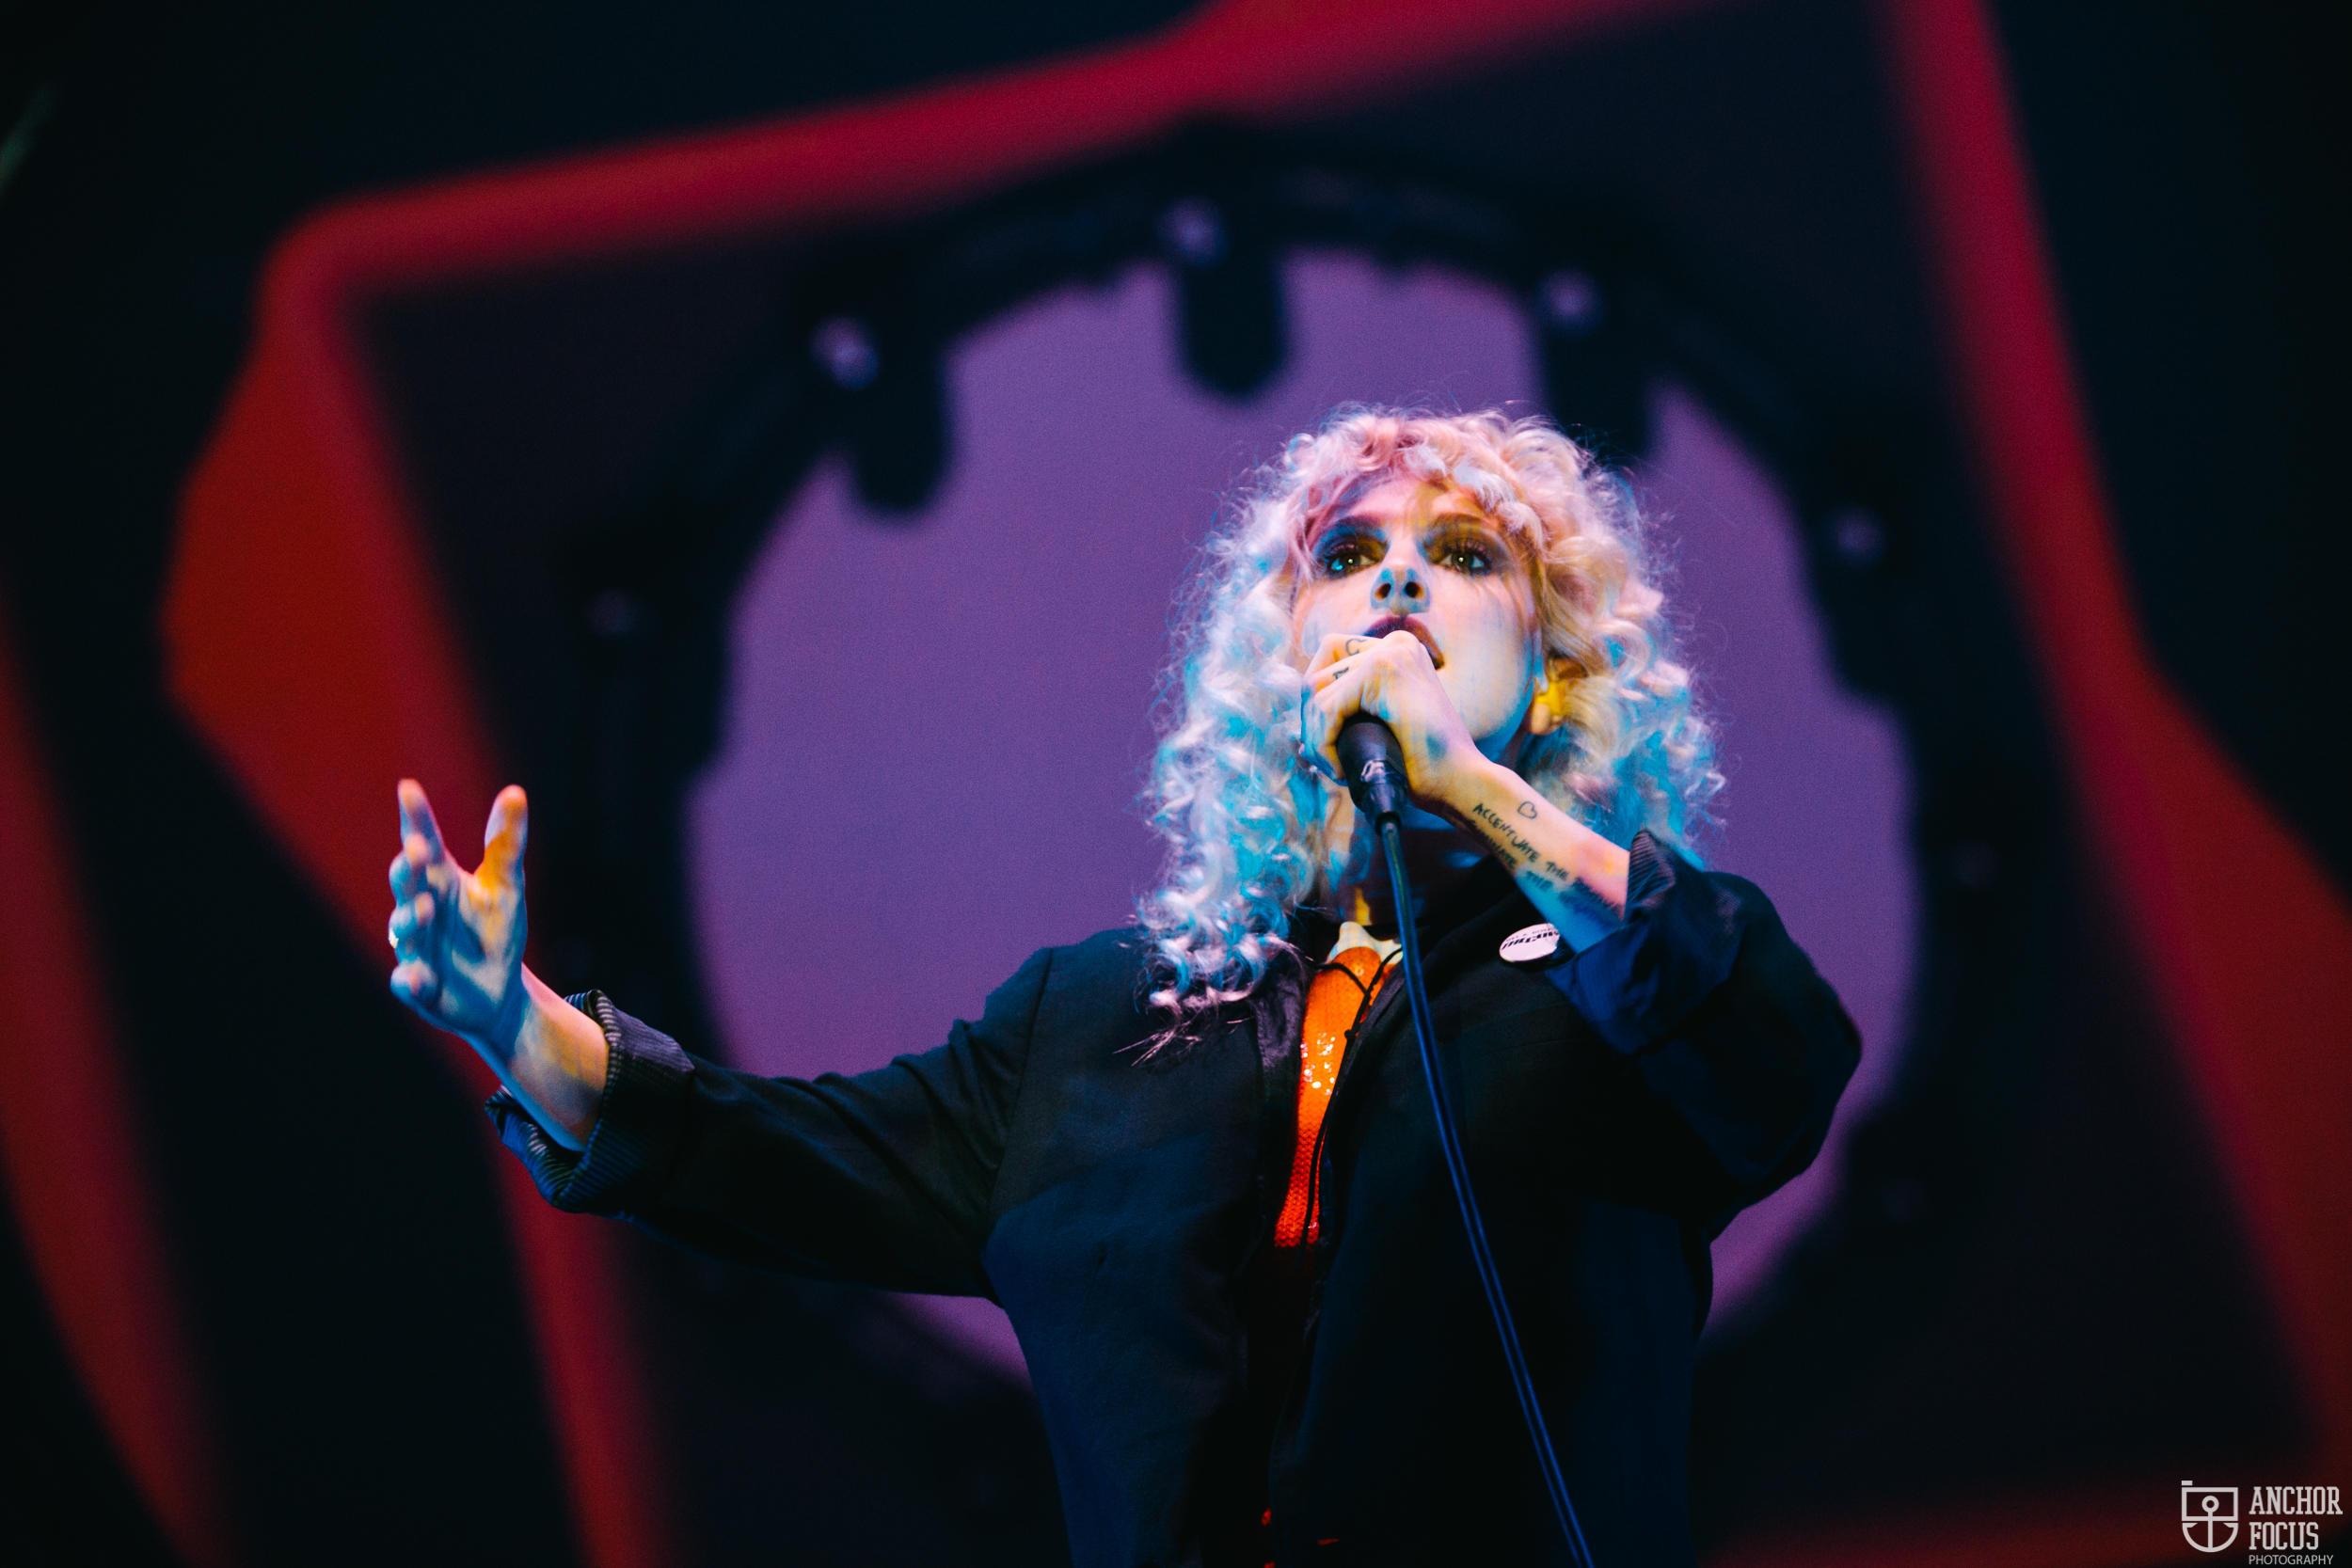 GALLERY: Paramore Rock the AFAS Live With Career-Spanning ... Paramore Afas Live